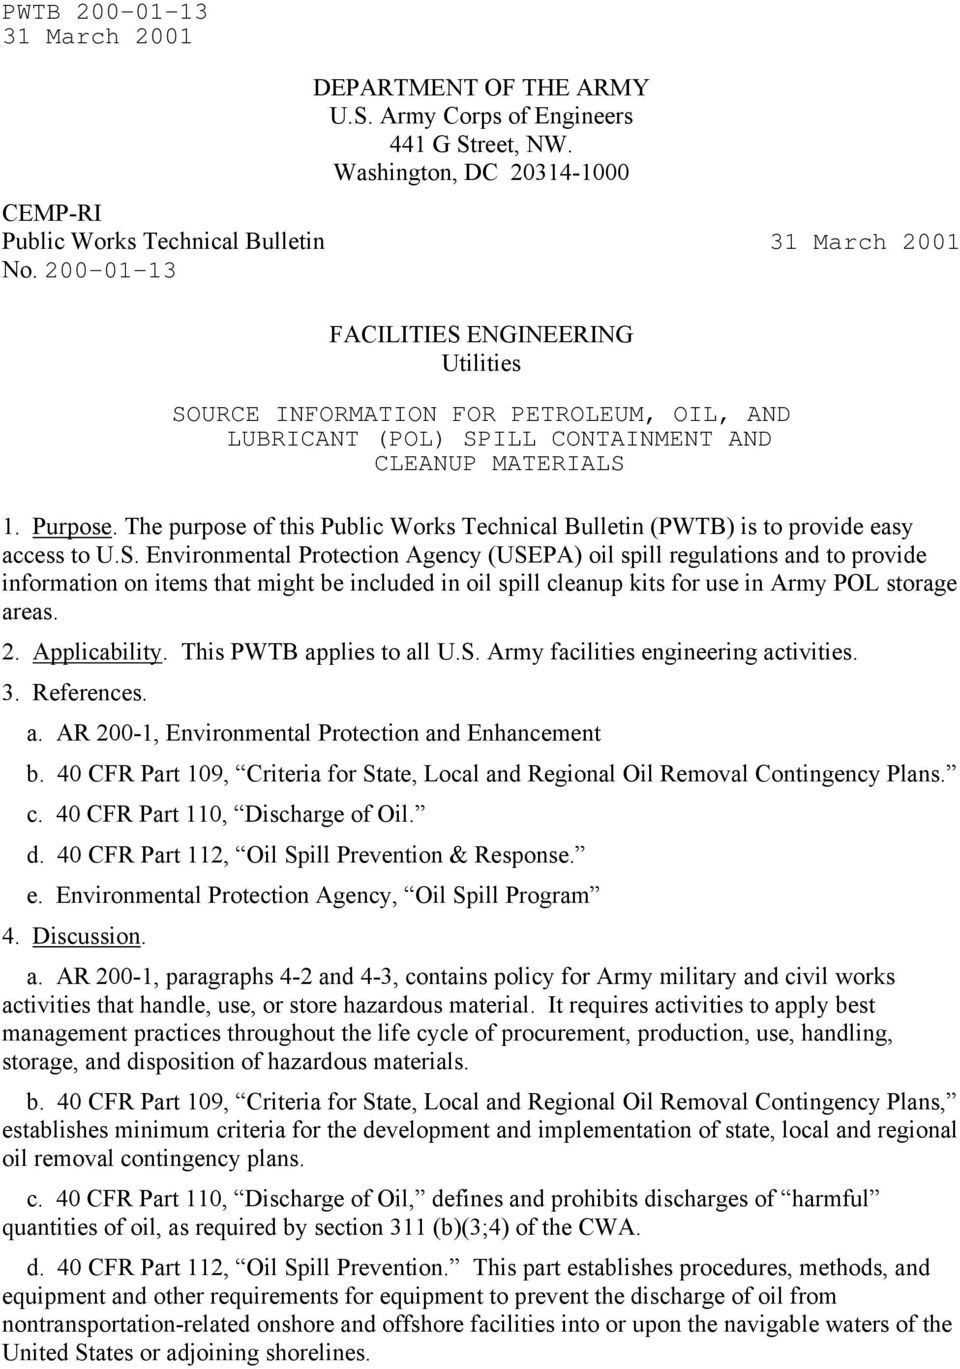 The purpose of this Public Works Technical Bulletin (PWTB) is to provide easy access to U.S.